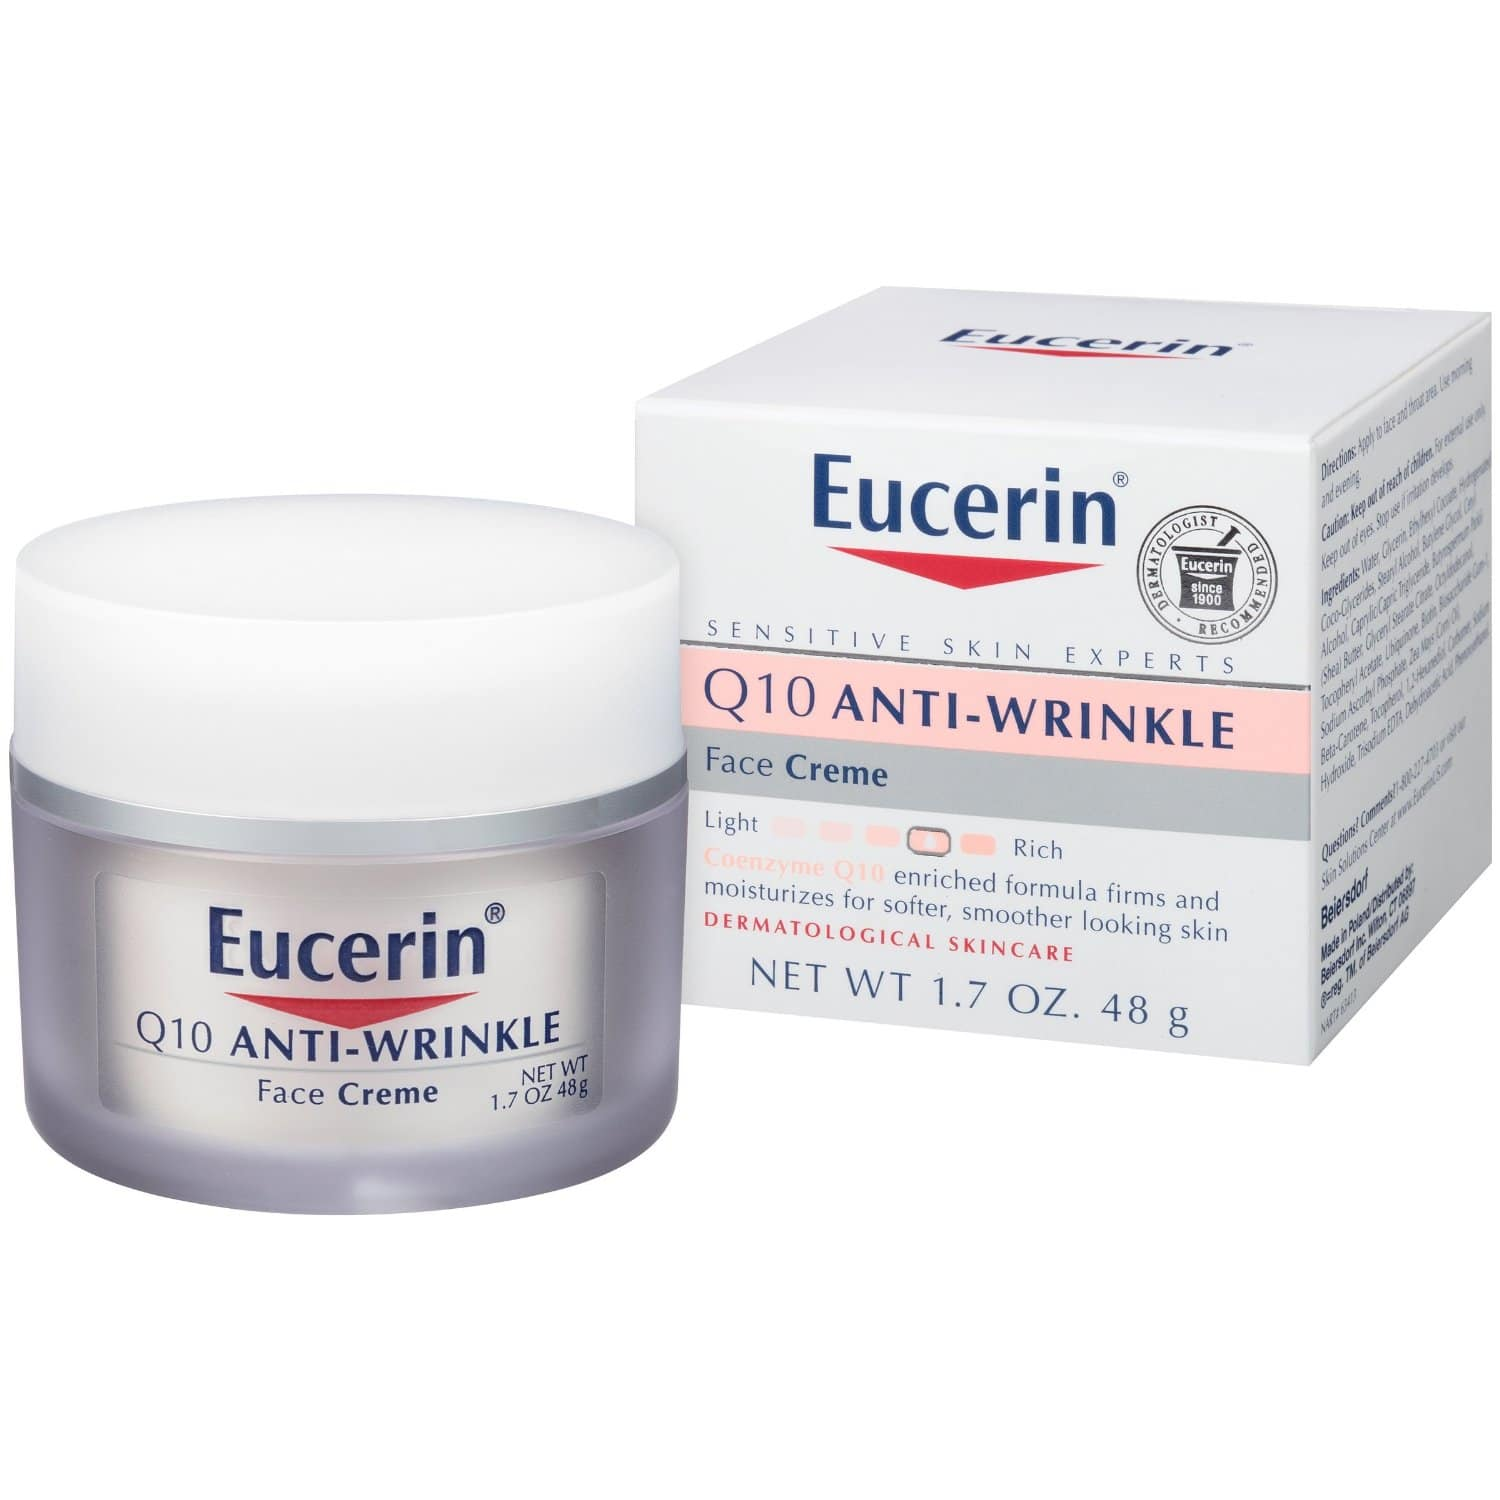 Amazon has Eucerin Q10 Anti-Wrinkle Sensitive Skin Creme 1.7 Ounce for $5.64